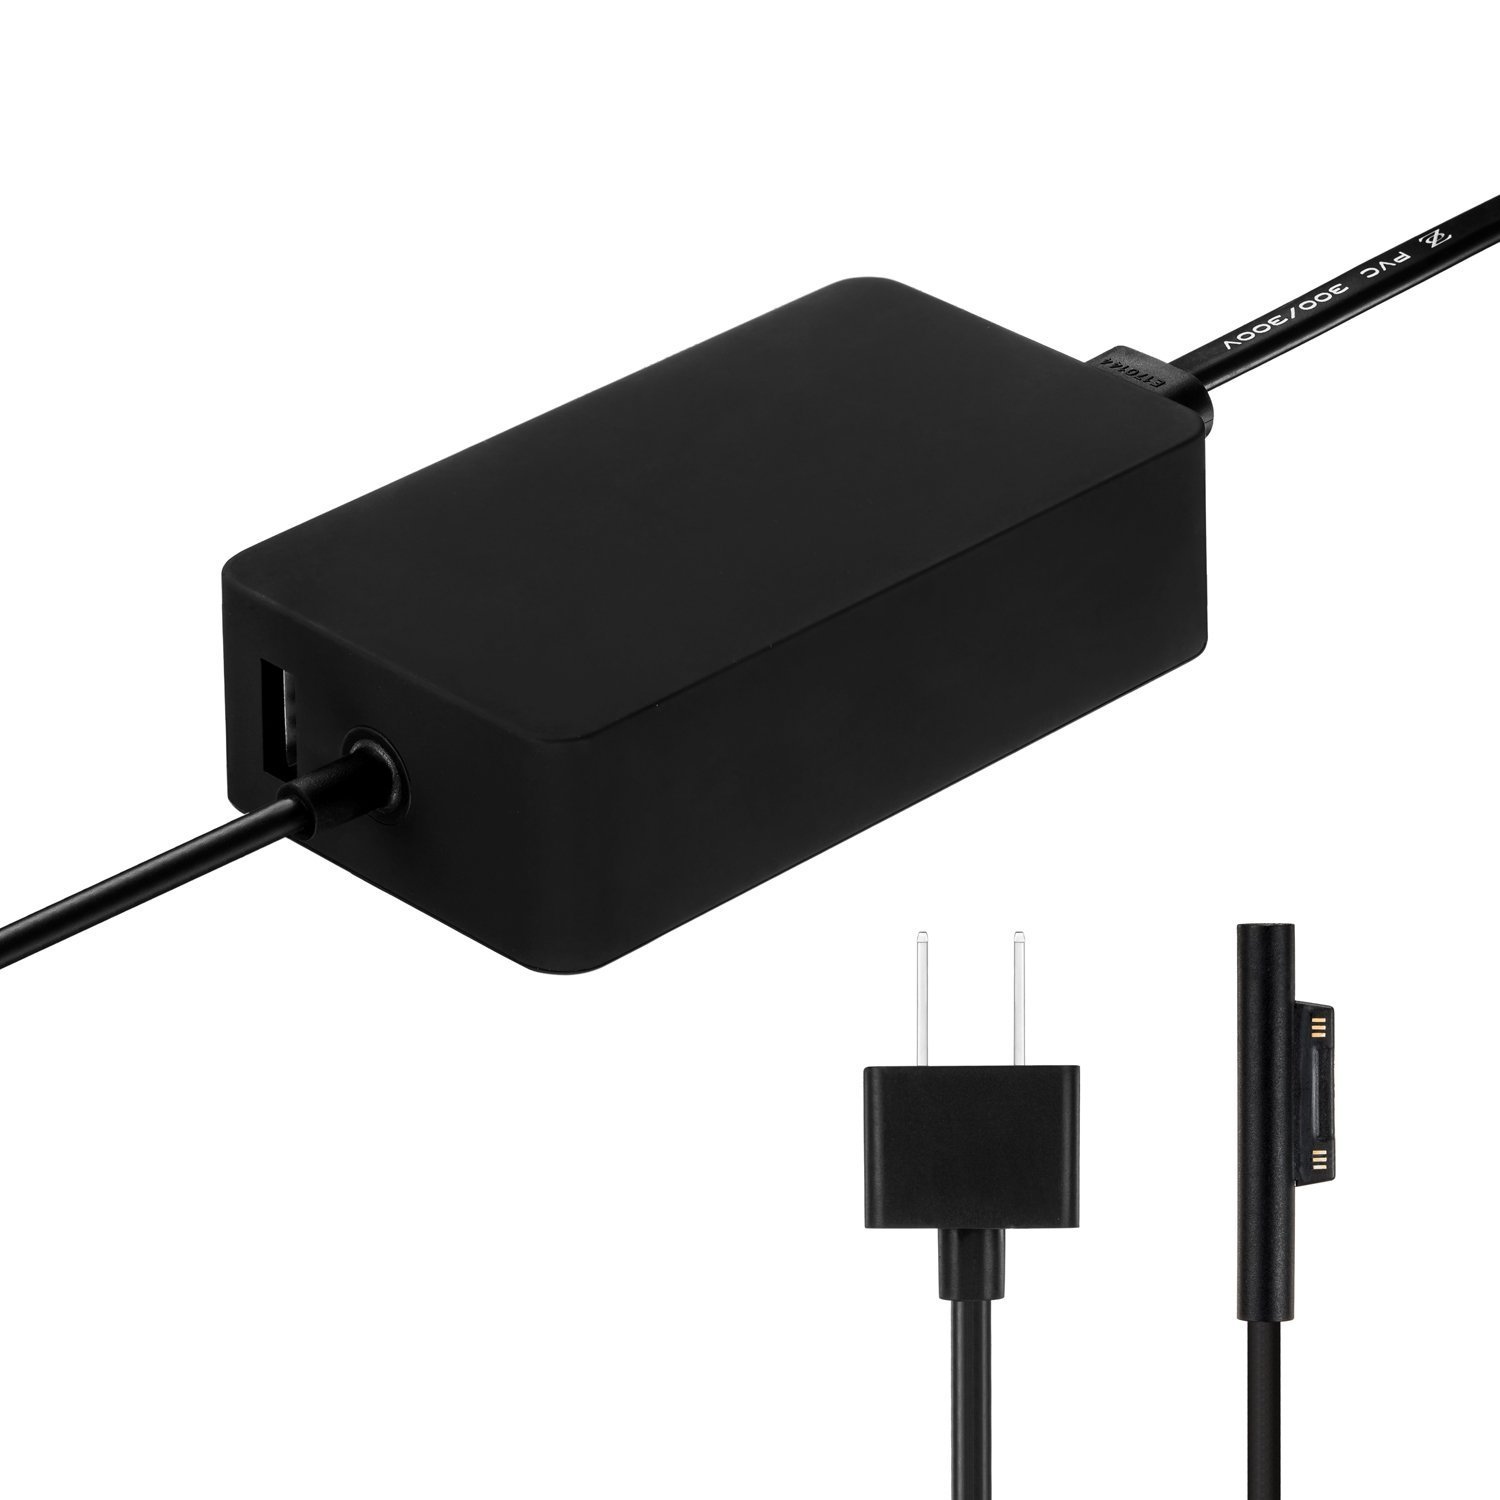 fits Model 1625(36W 12V 2.58A) Probrother Brand New Magnetic Replacement AC Power Adapter Charger For Microsoft Surface pro 3 Surface pro 4 Pro 5 with USB Charging Port and 6Ft Cord